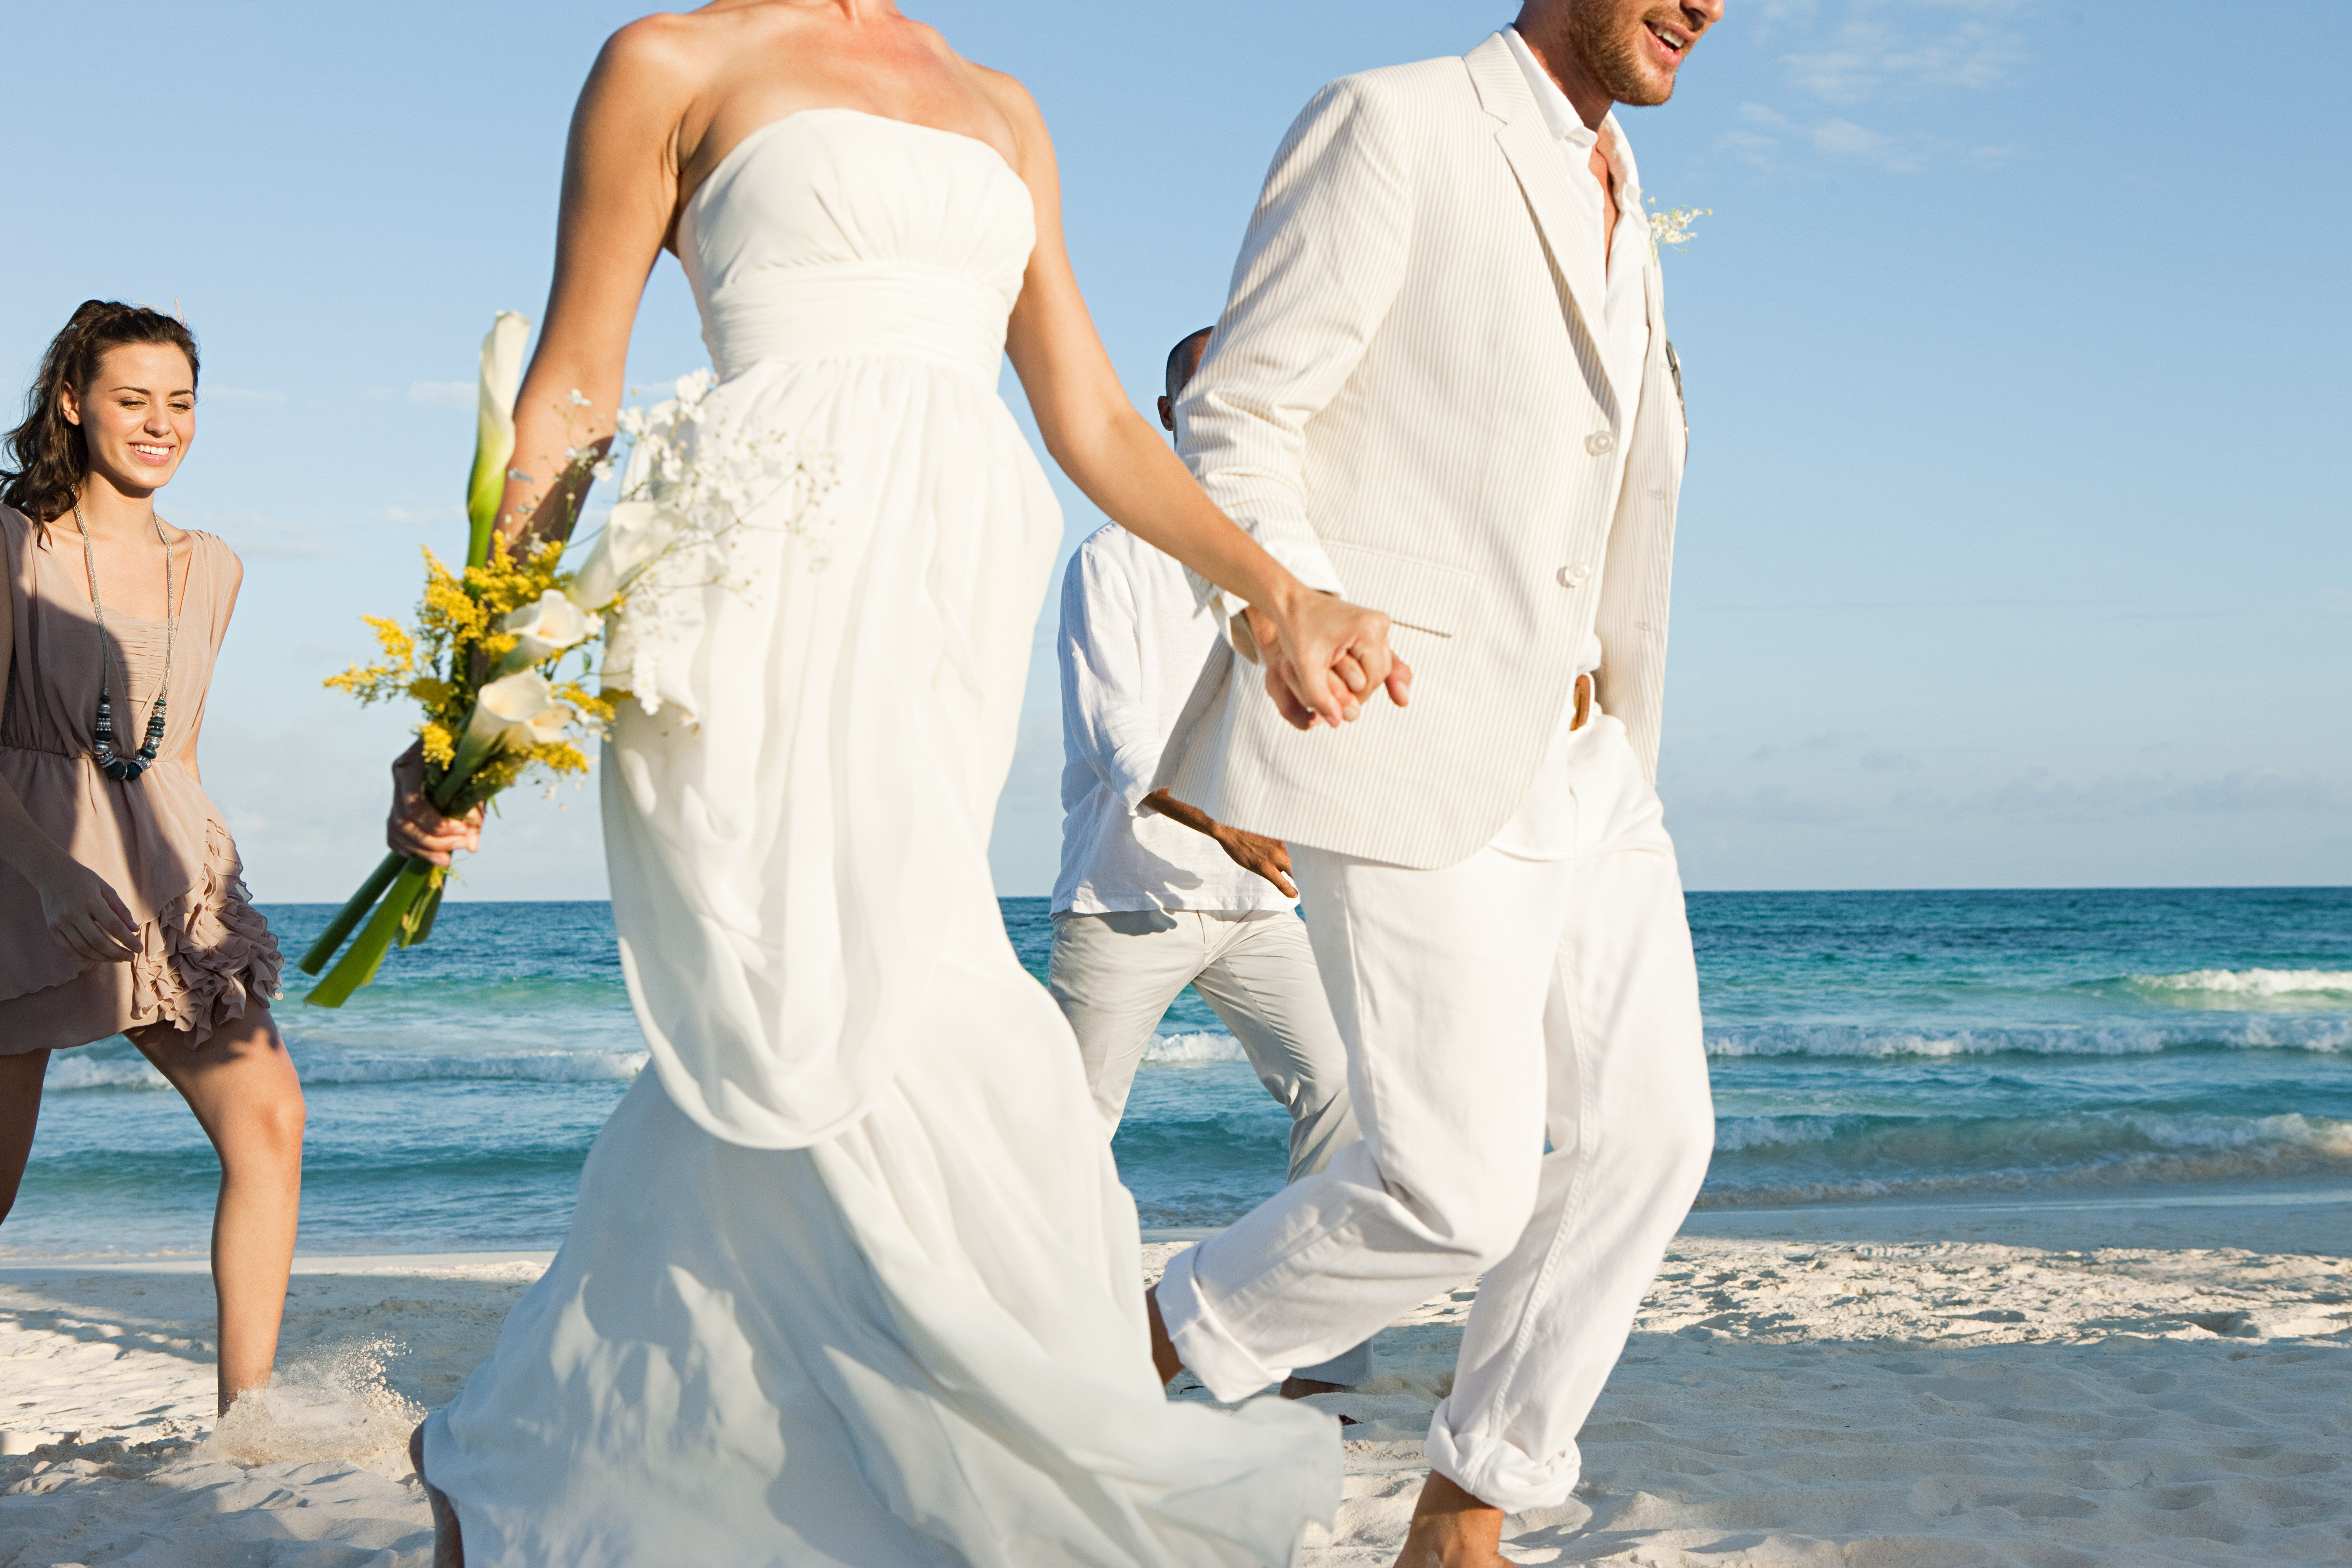 How to Use Sweepstakes to Win a Luxe Honeymoon for Free